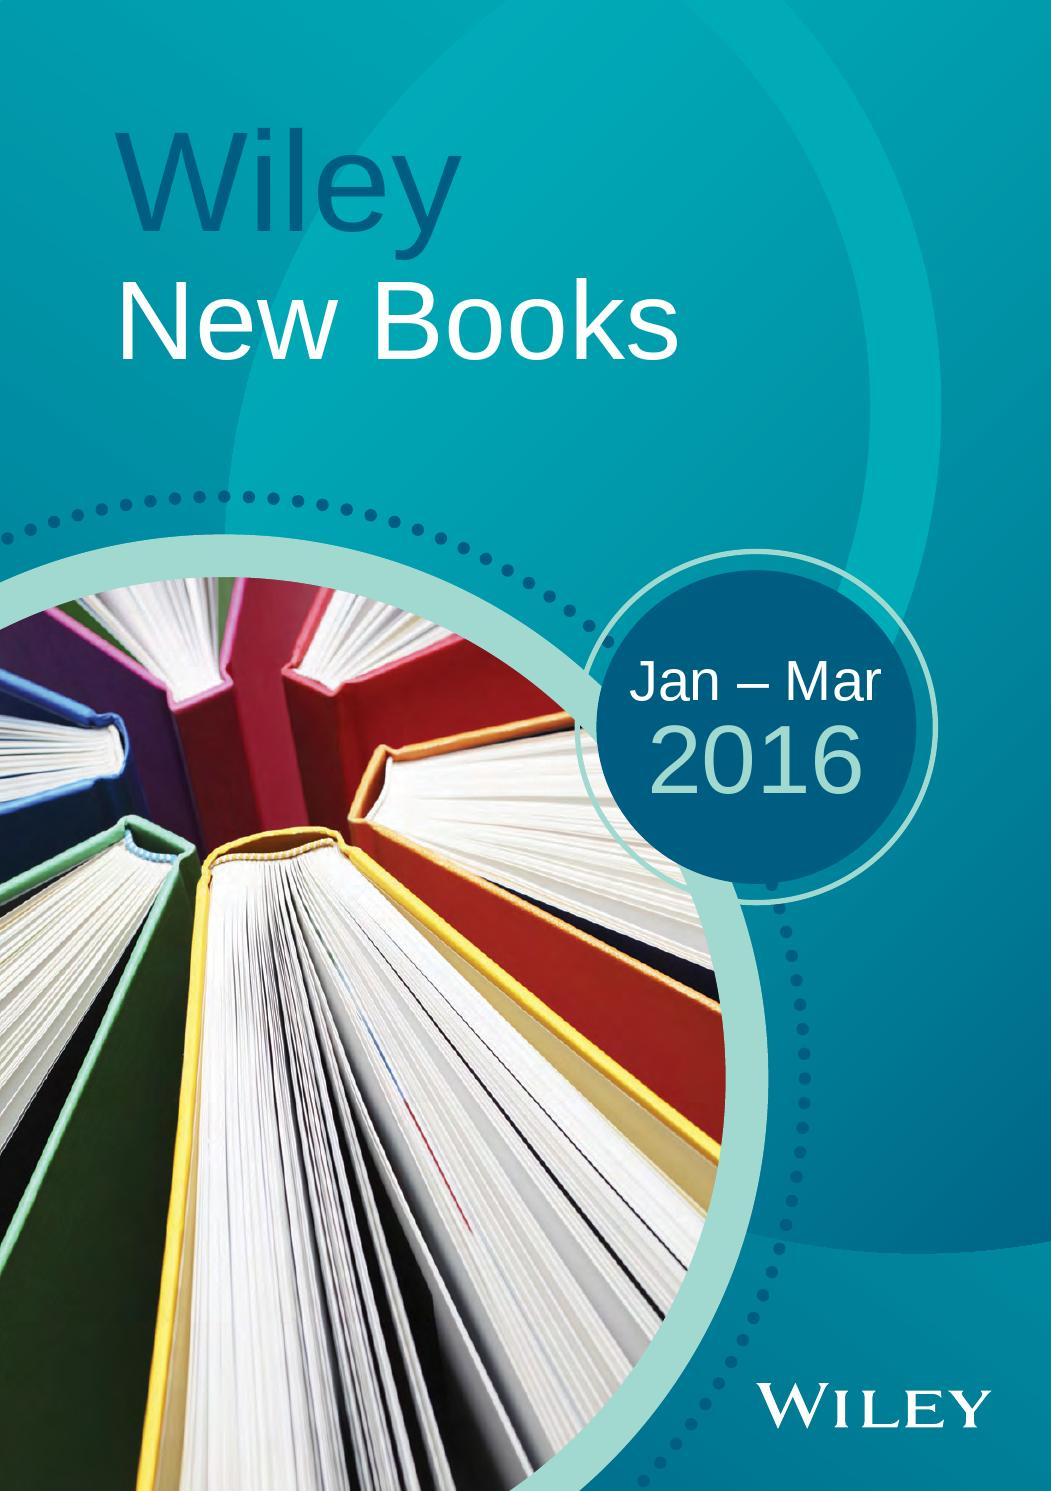 wiley new books catalog 2016 by wiley india issuu